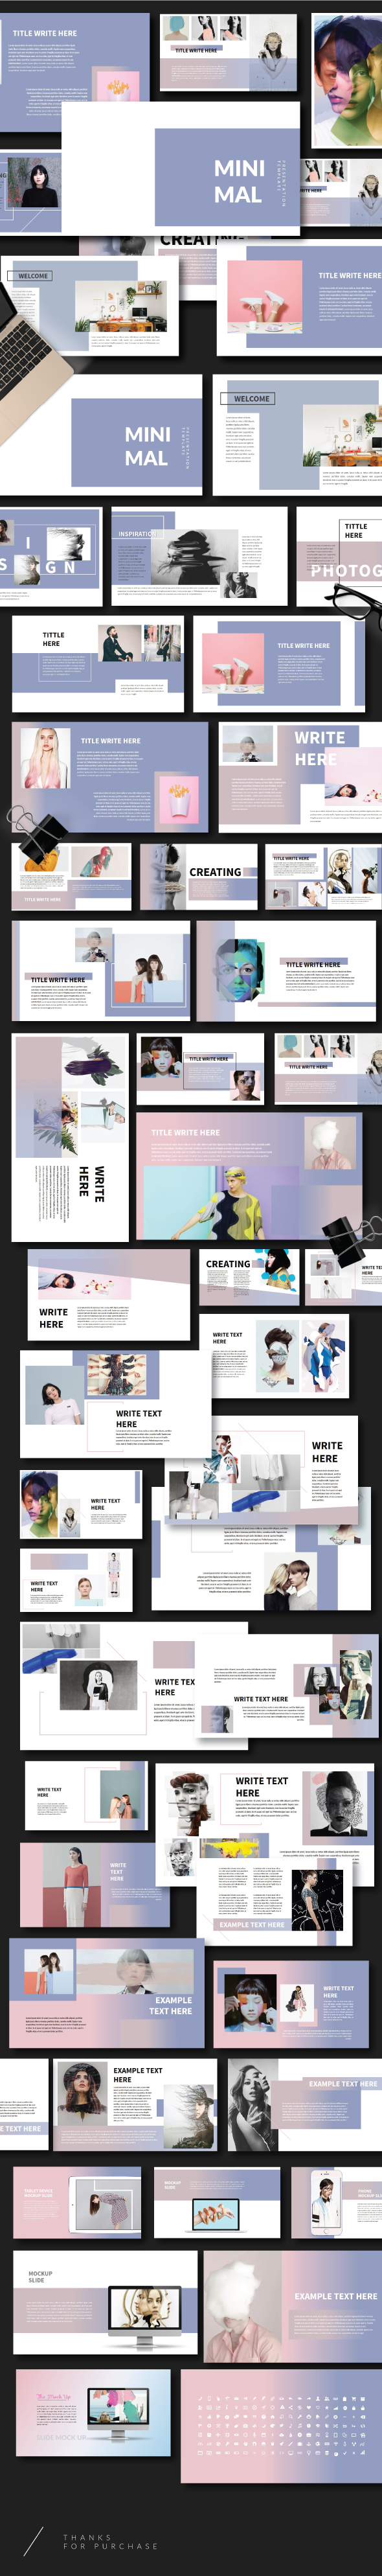 Minimal - Creative Powerpoint Template - Creative PowerPoint Templates